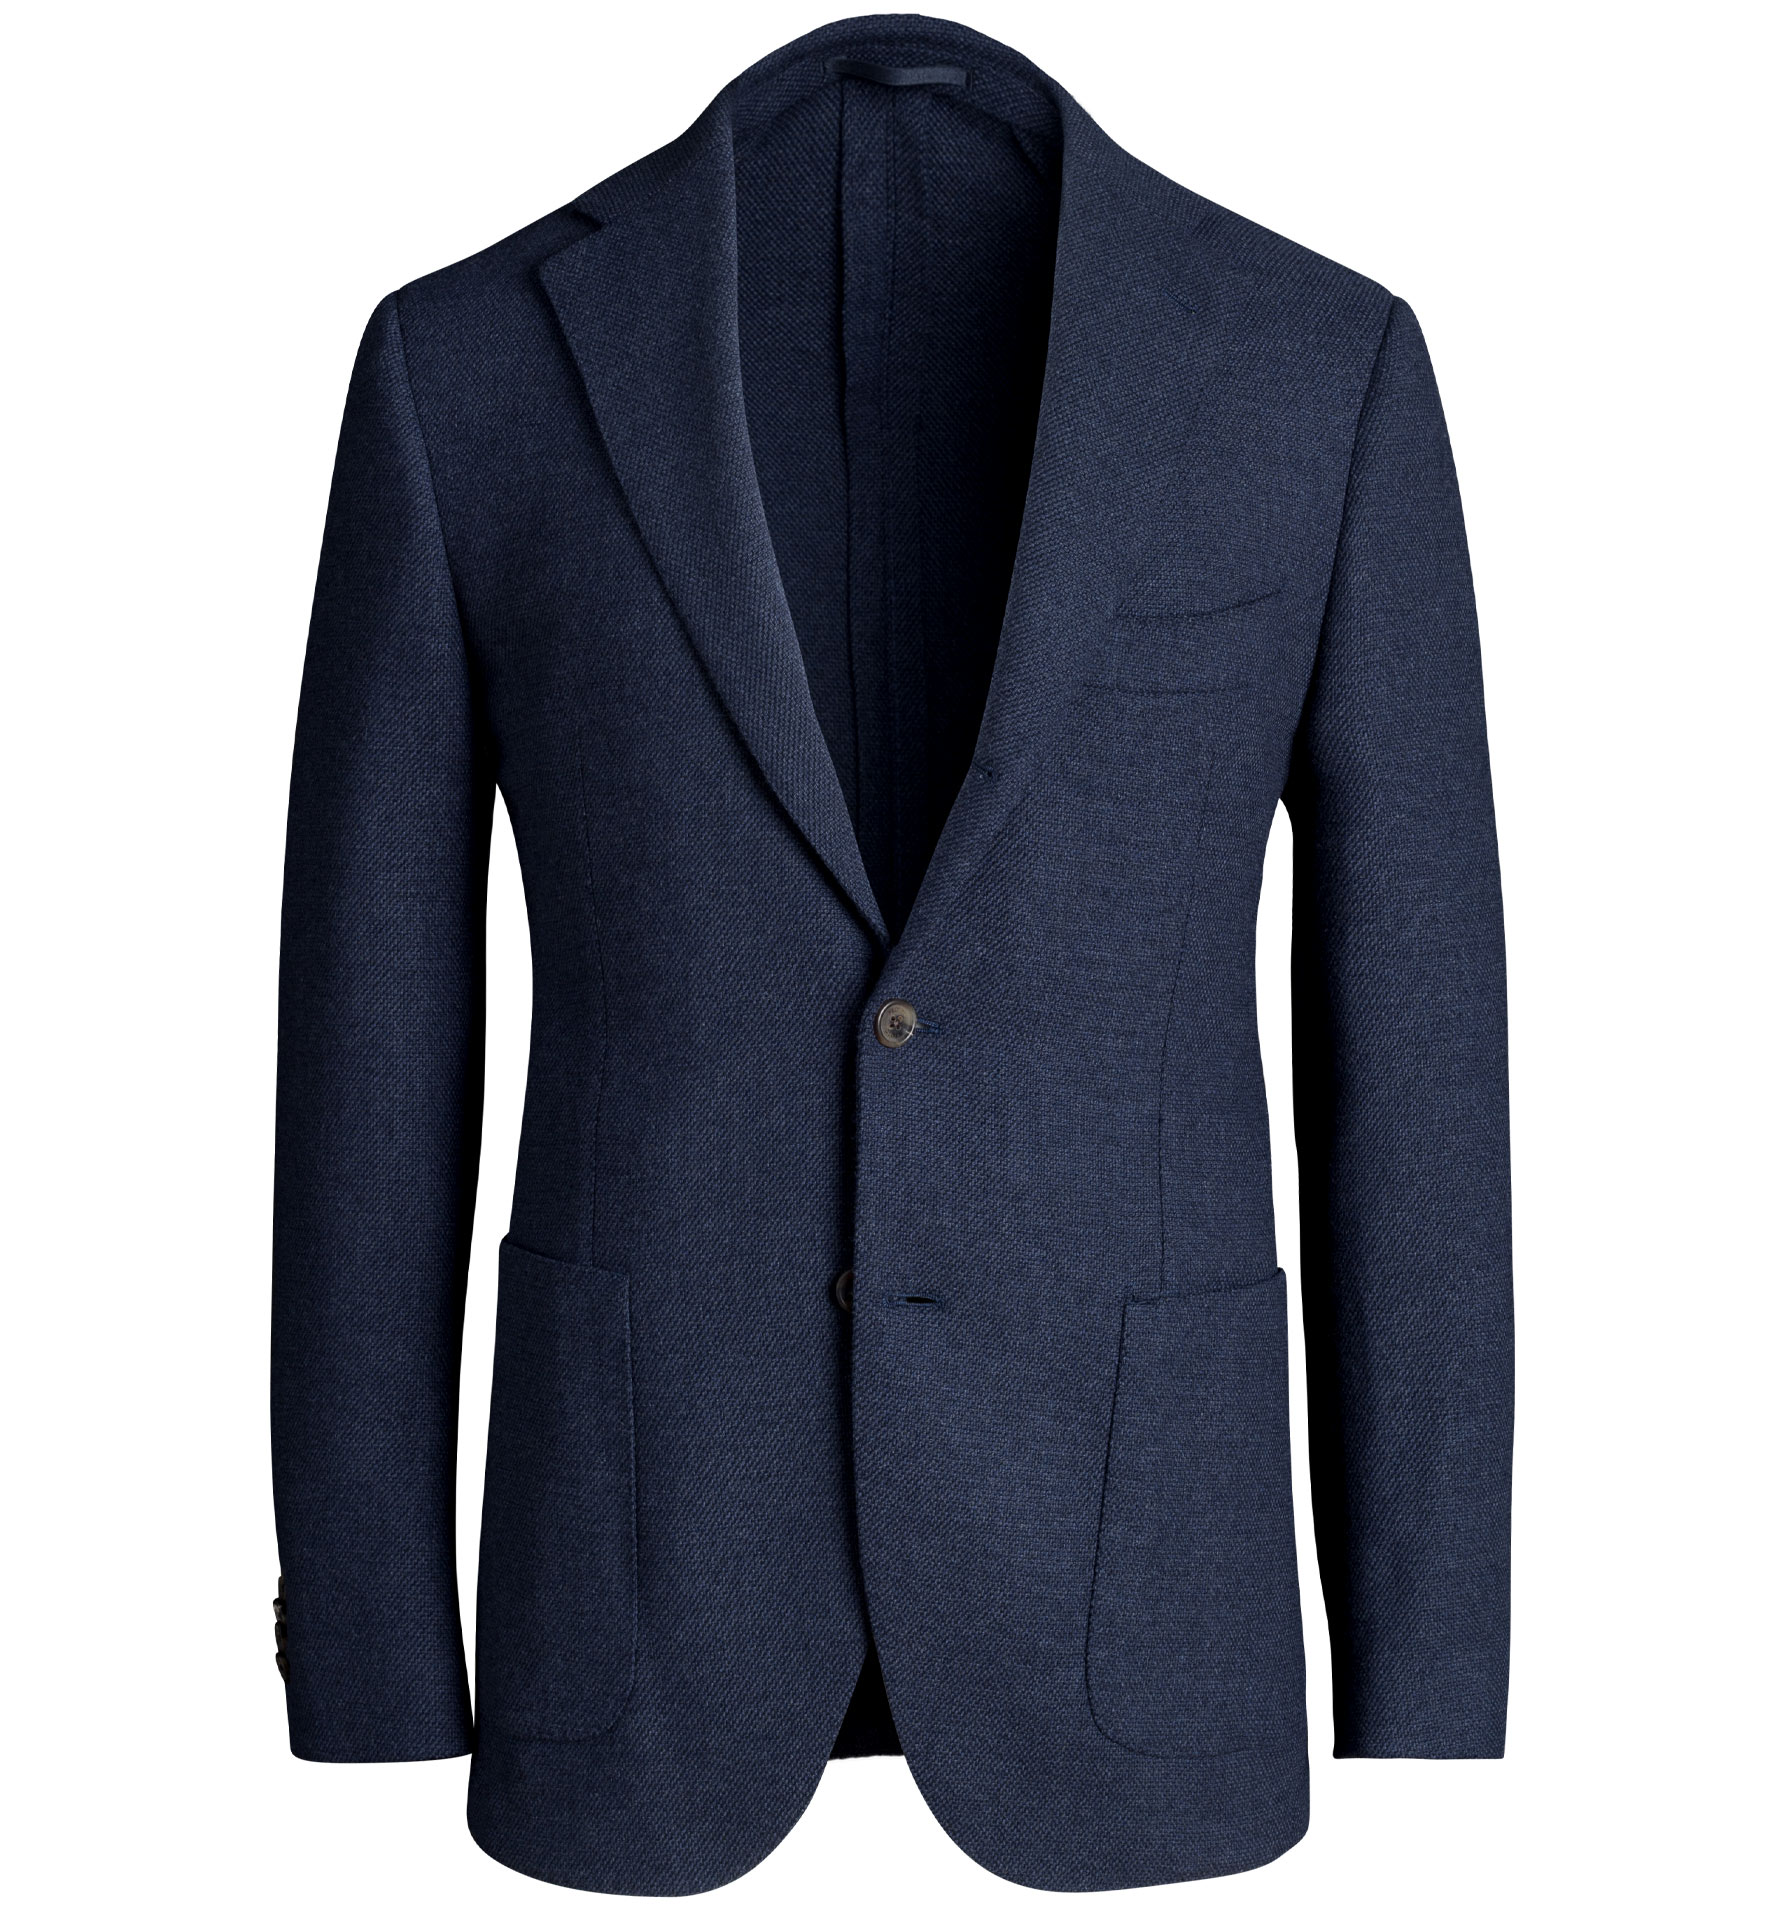 Zoom Image of Bedford Navy Brushed Stretch Hopsack Jacket